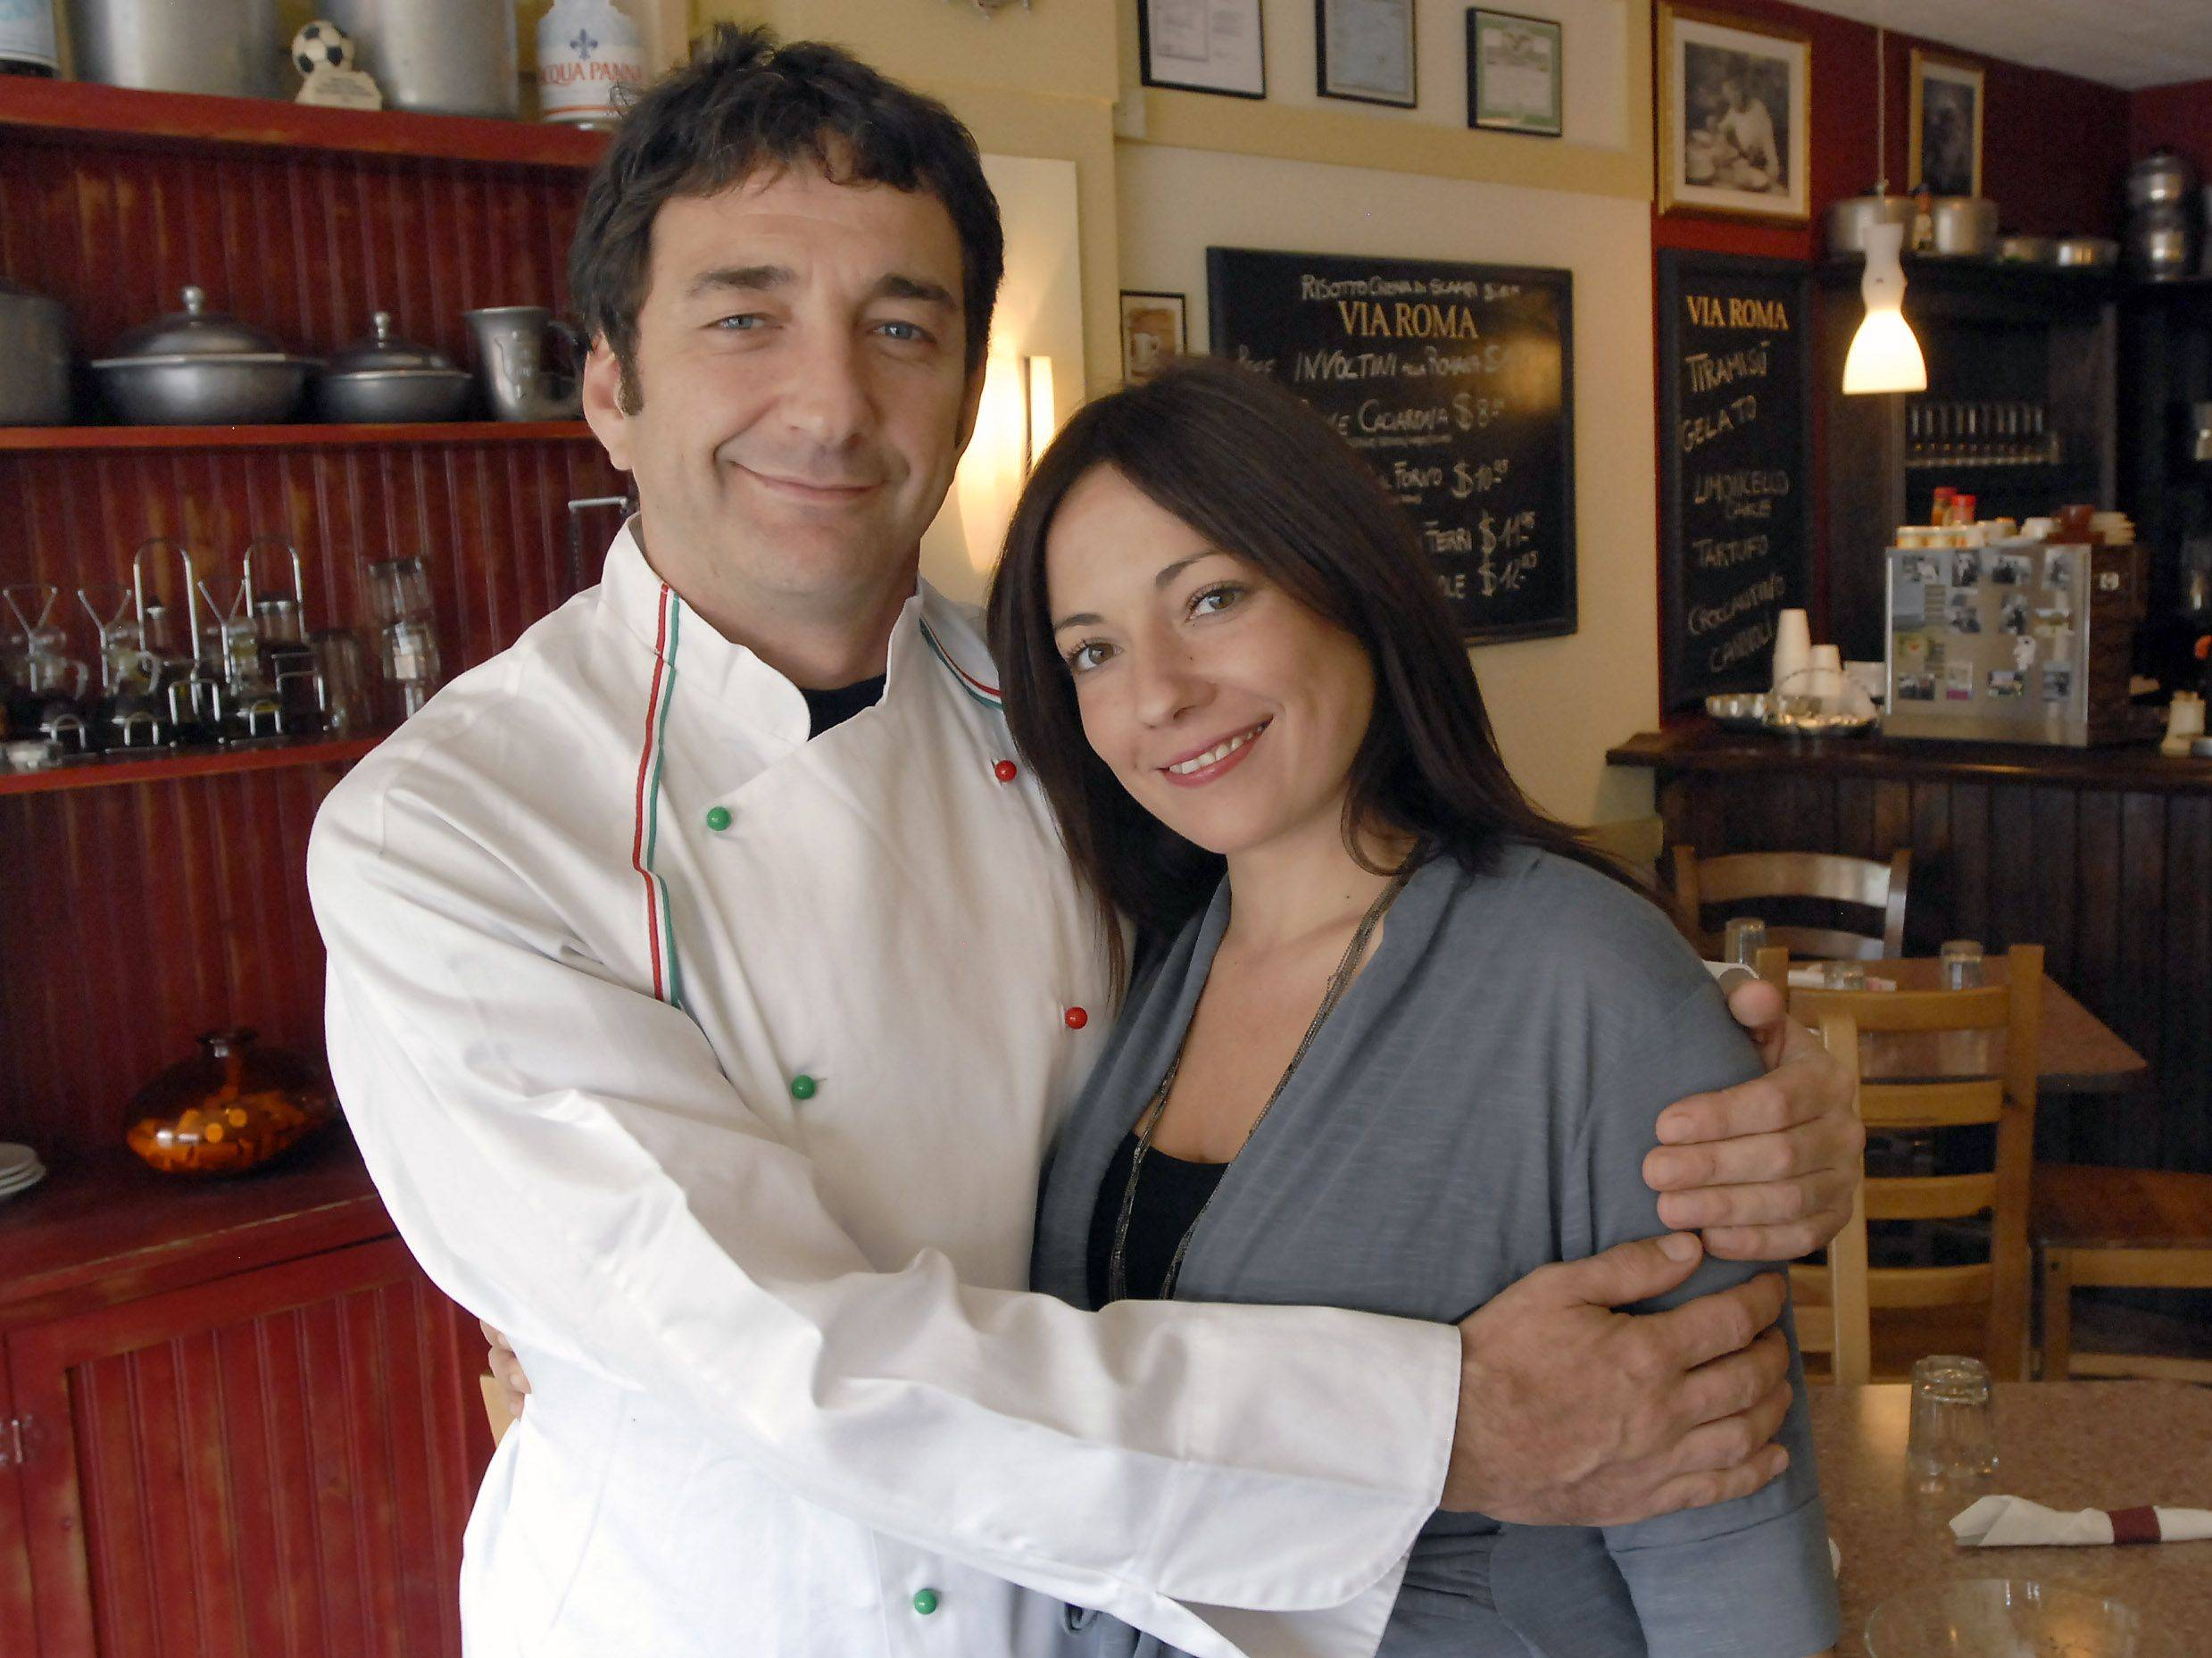 Chef Alessandro Forti and his wife Lisa Leslie serve up Italian fare at Via Roma in Des Plaines.